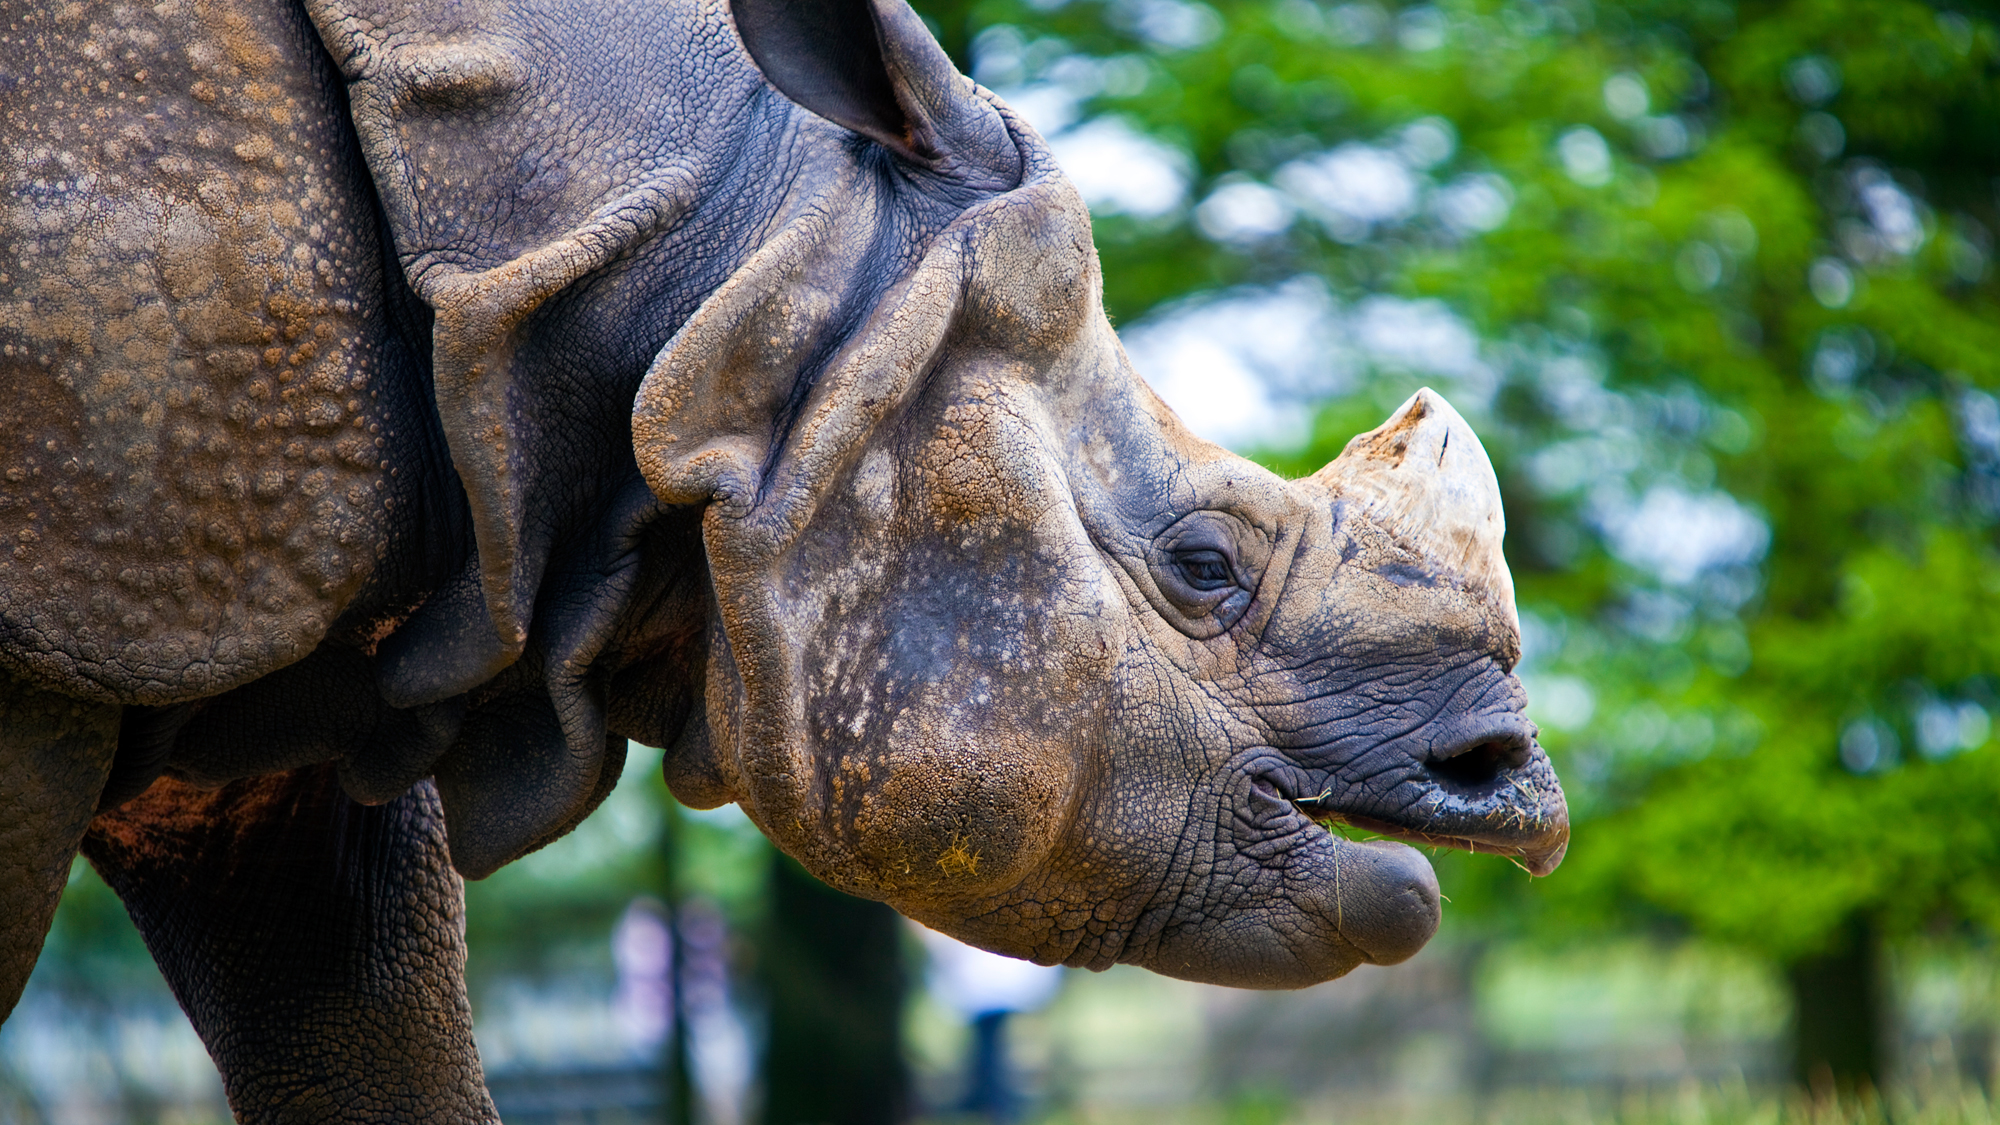 Asian one-horned rhino pictures